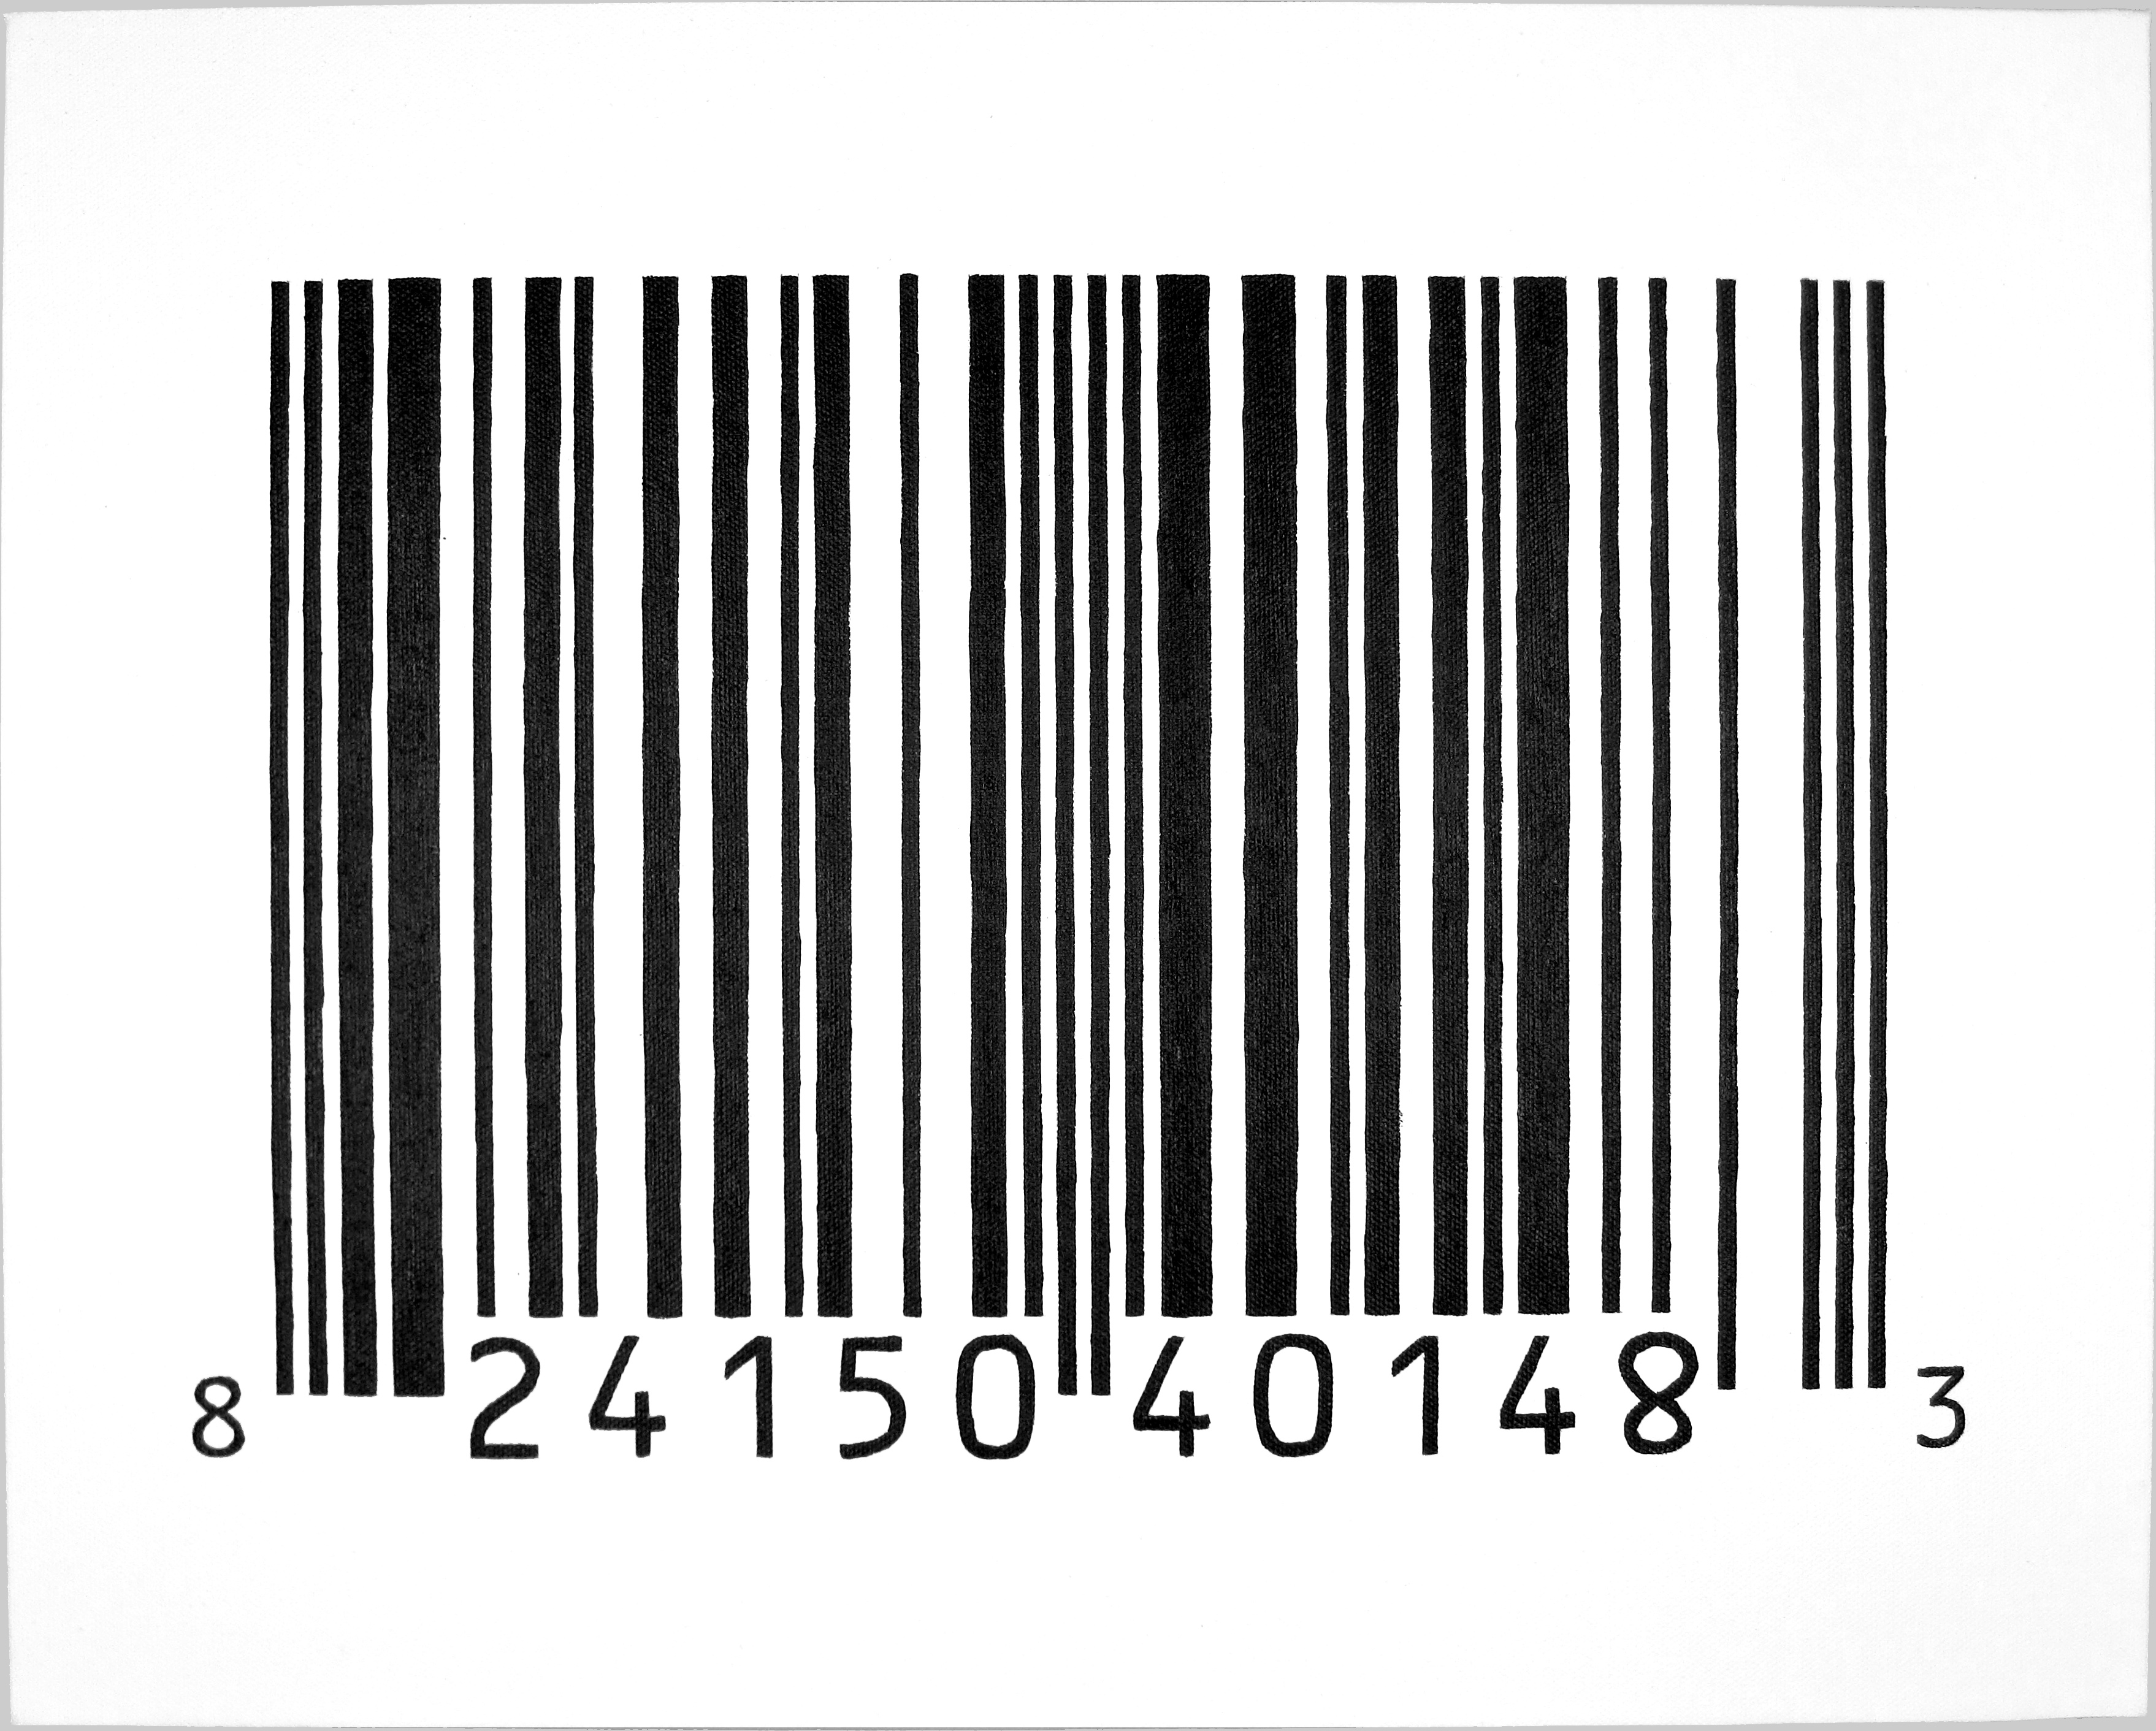 13 psd magazine barcode images upc code barcode psd and